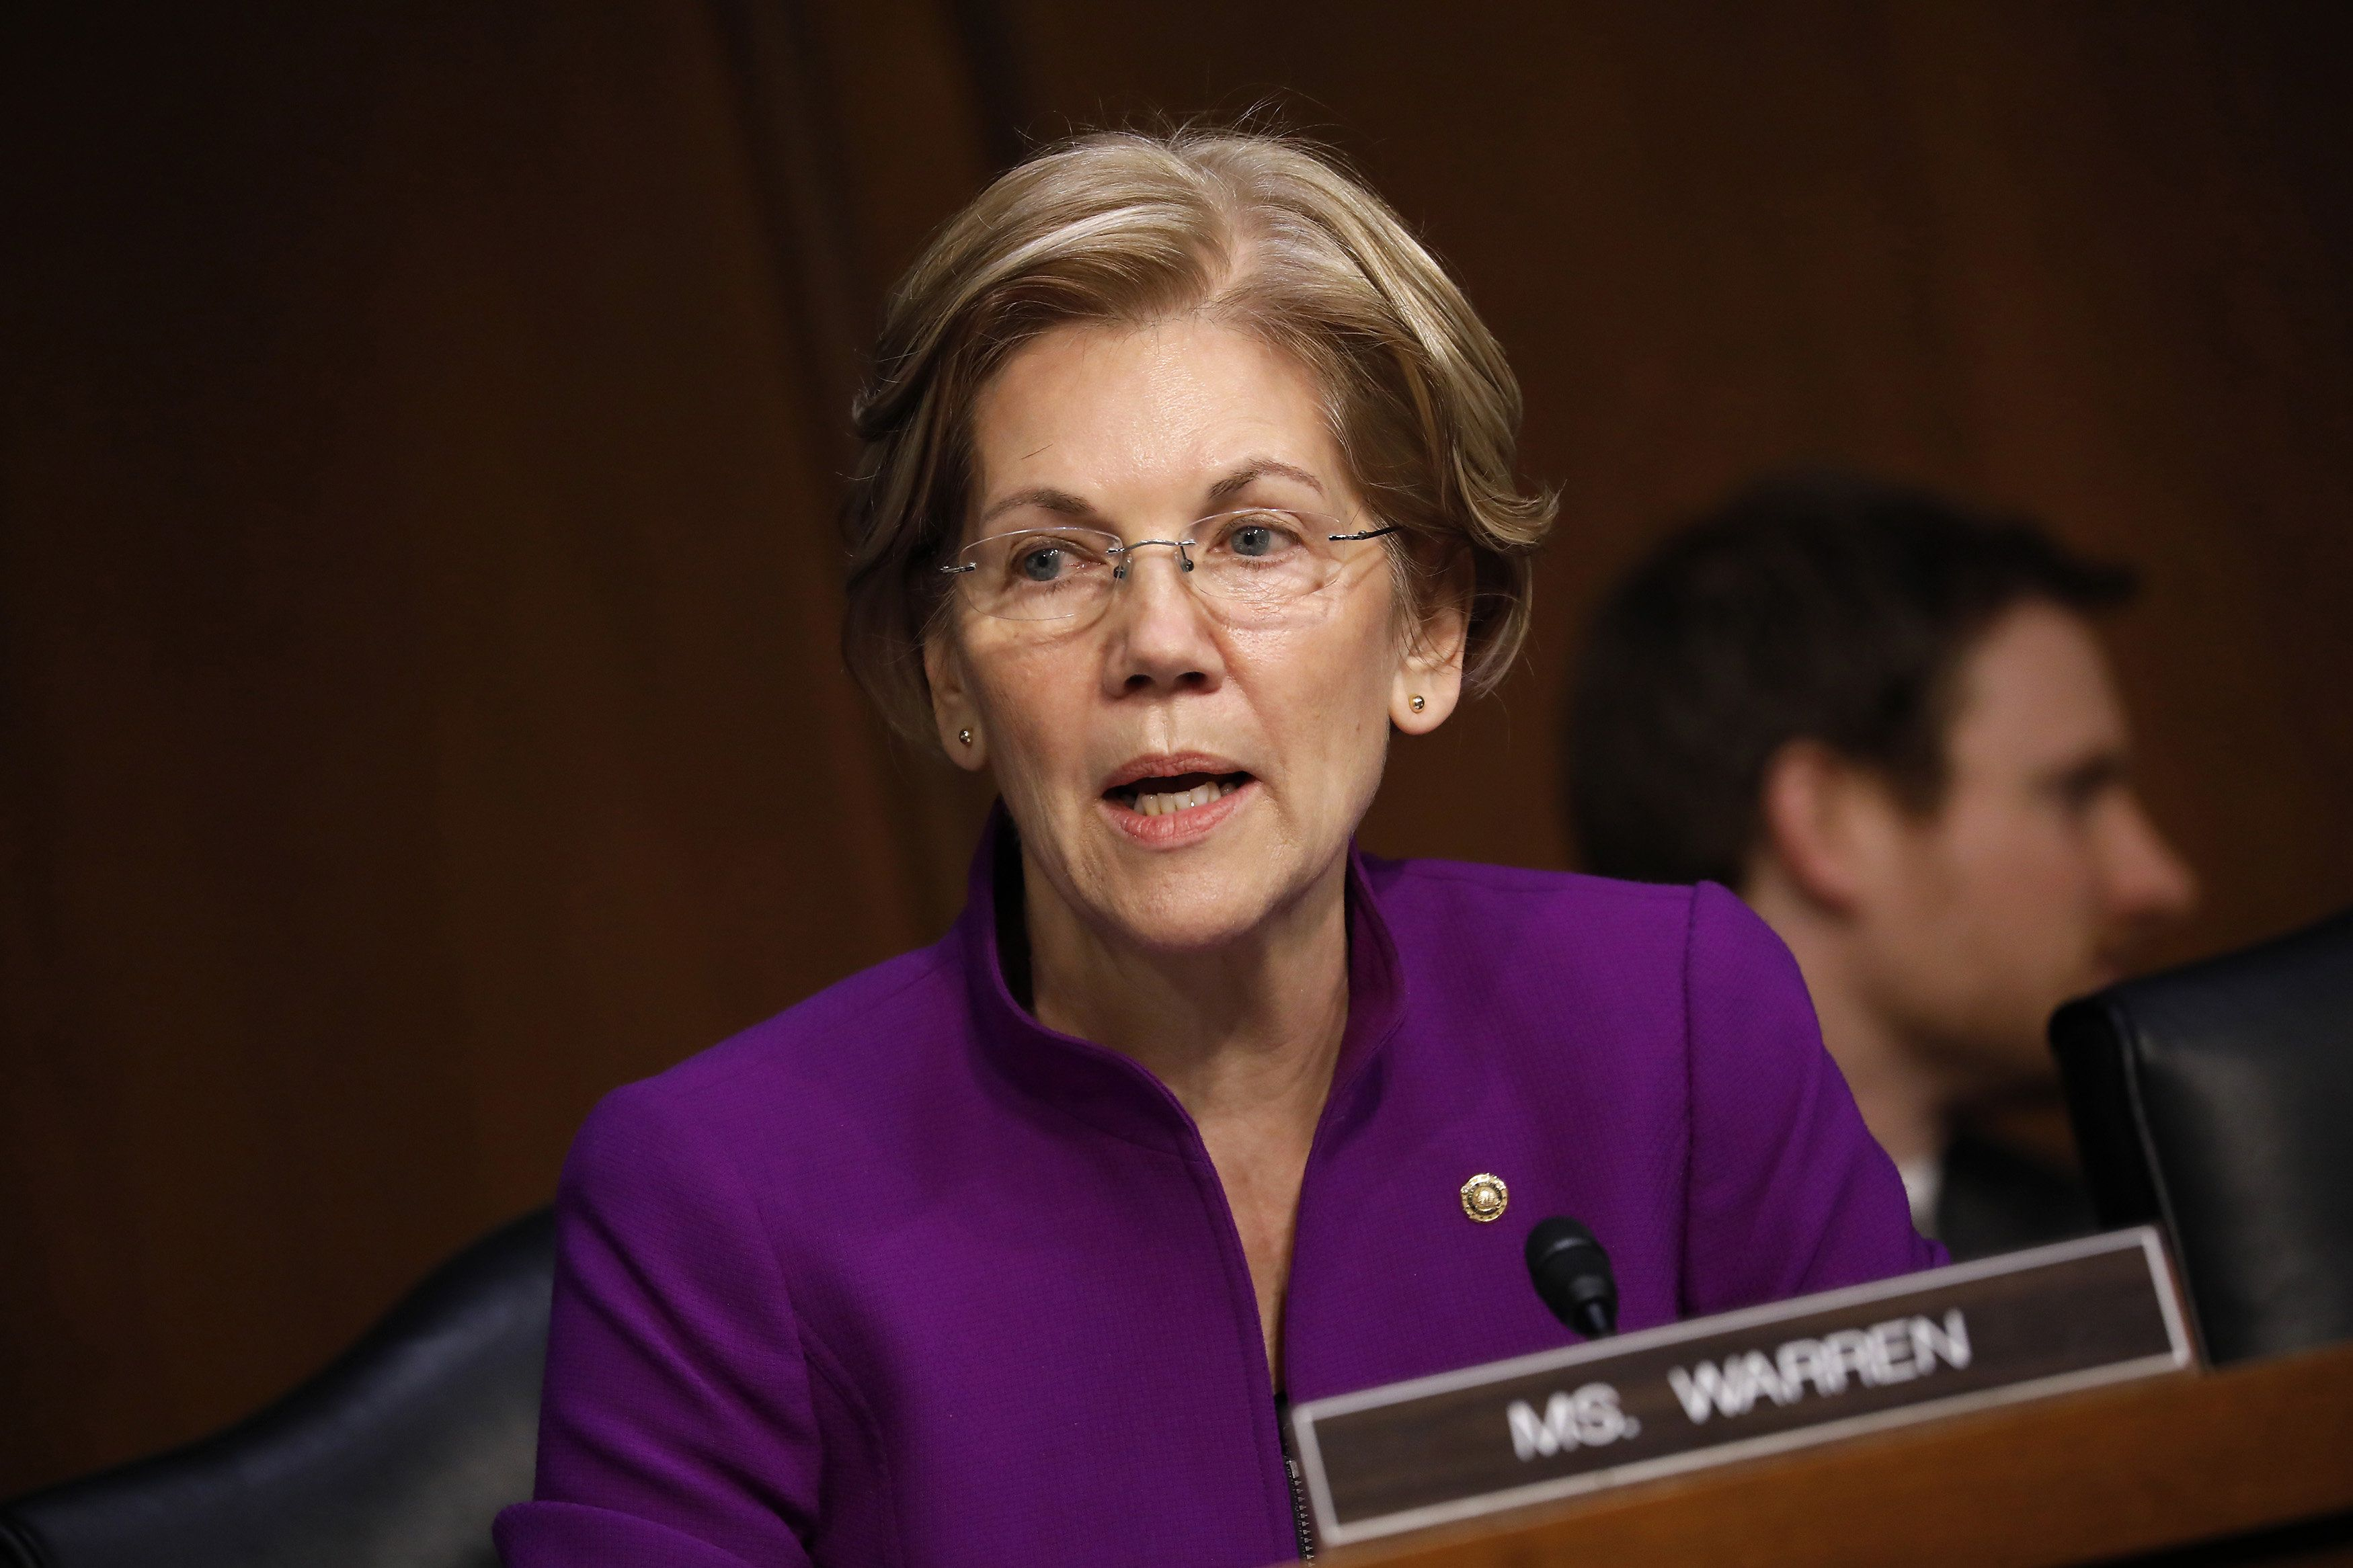 Senator Elizabeth Warren, a Democrat from Massachusetts, questions Jerome Powell, chairman of the U.S. Federal Reserve nominee for U.S. President Donald Trump, not pictured, during a Senate Banking Committee confirmation hearing in Washington, D.C., U.S., on Tuesday, Nov. 28, 2017. Powell signaled broad support for how the Fed operates, regulates and guides the economy, offering a full-throated defense of the government institution he's about to lead. Photographer: Aaron P. Bernstein/Bloomberg